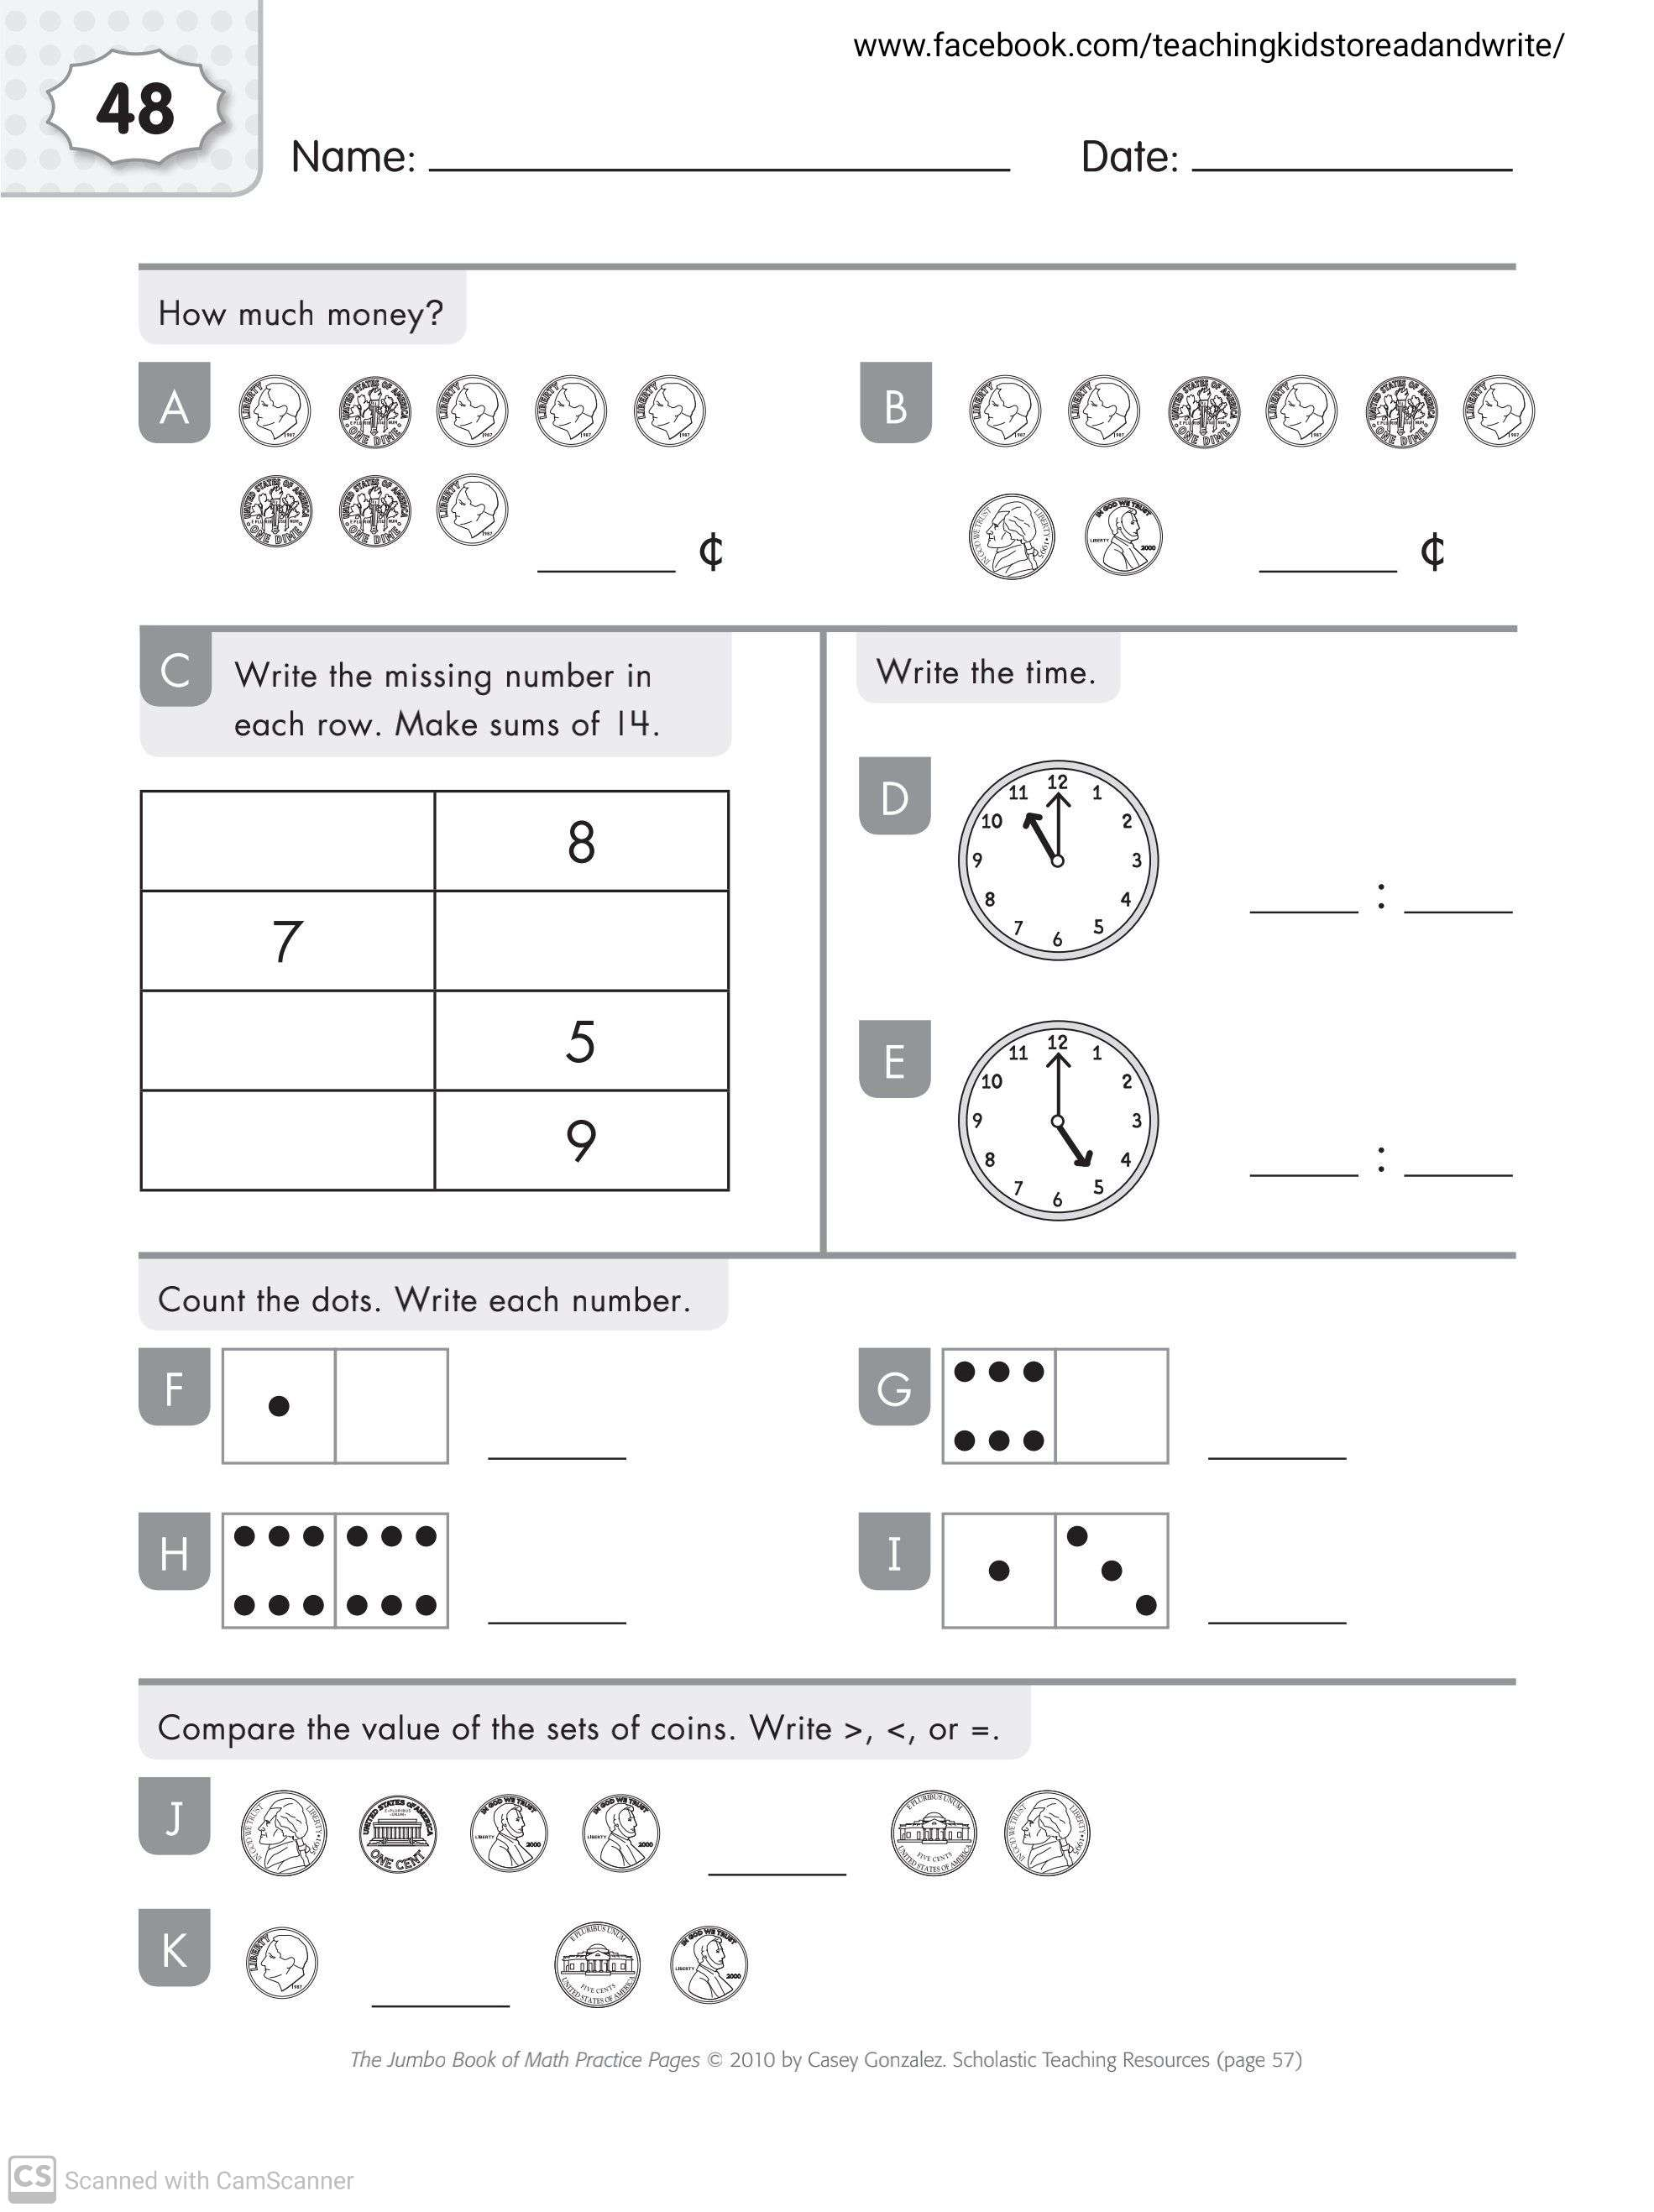 Maths Worksheets For Grade 1 Part 2 Teaching Kids To